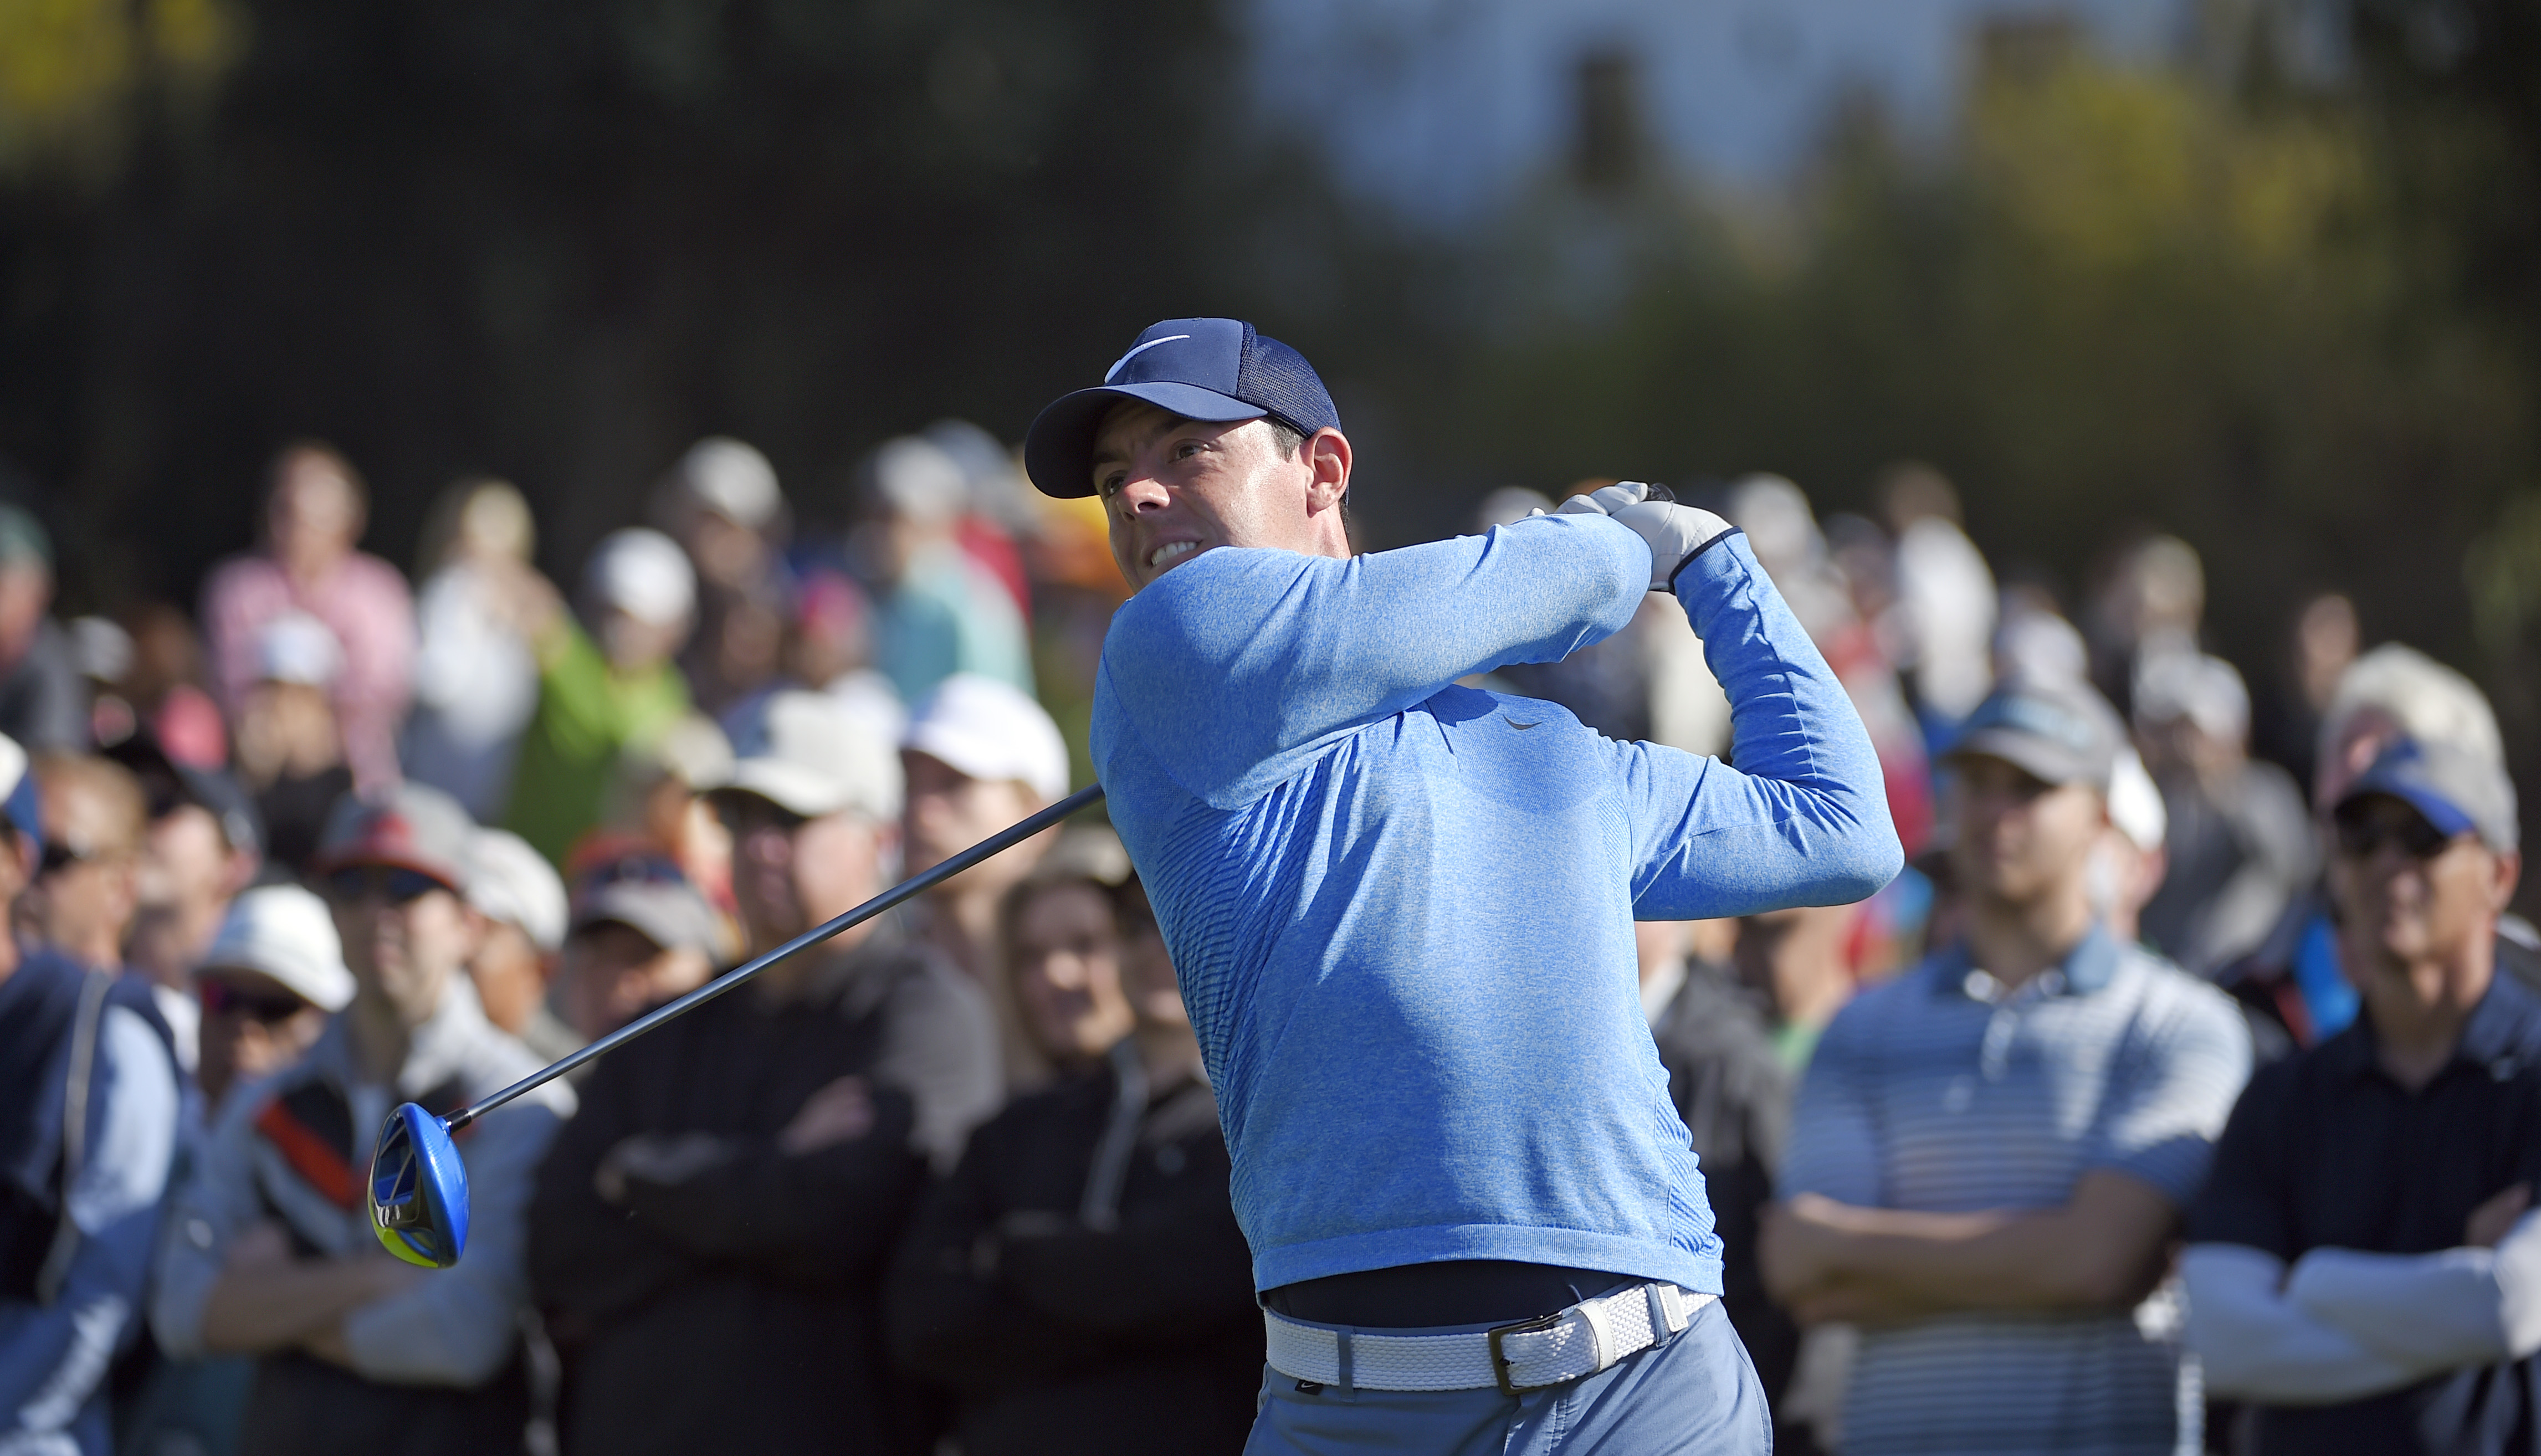 Rory McIlroy has outwardly shown disdain toward questions about his weightlifting.